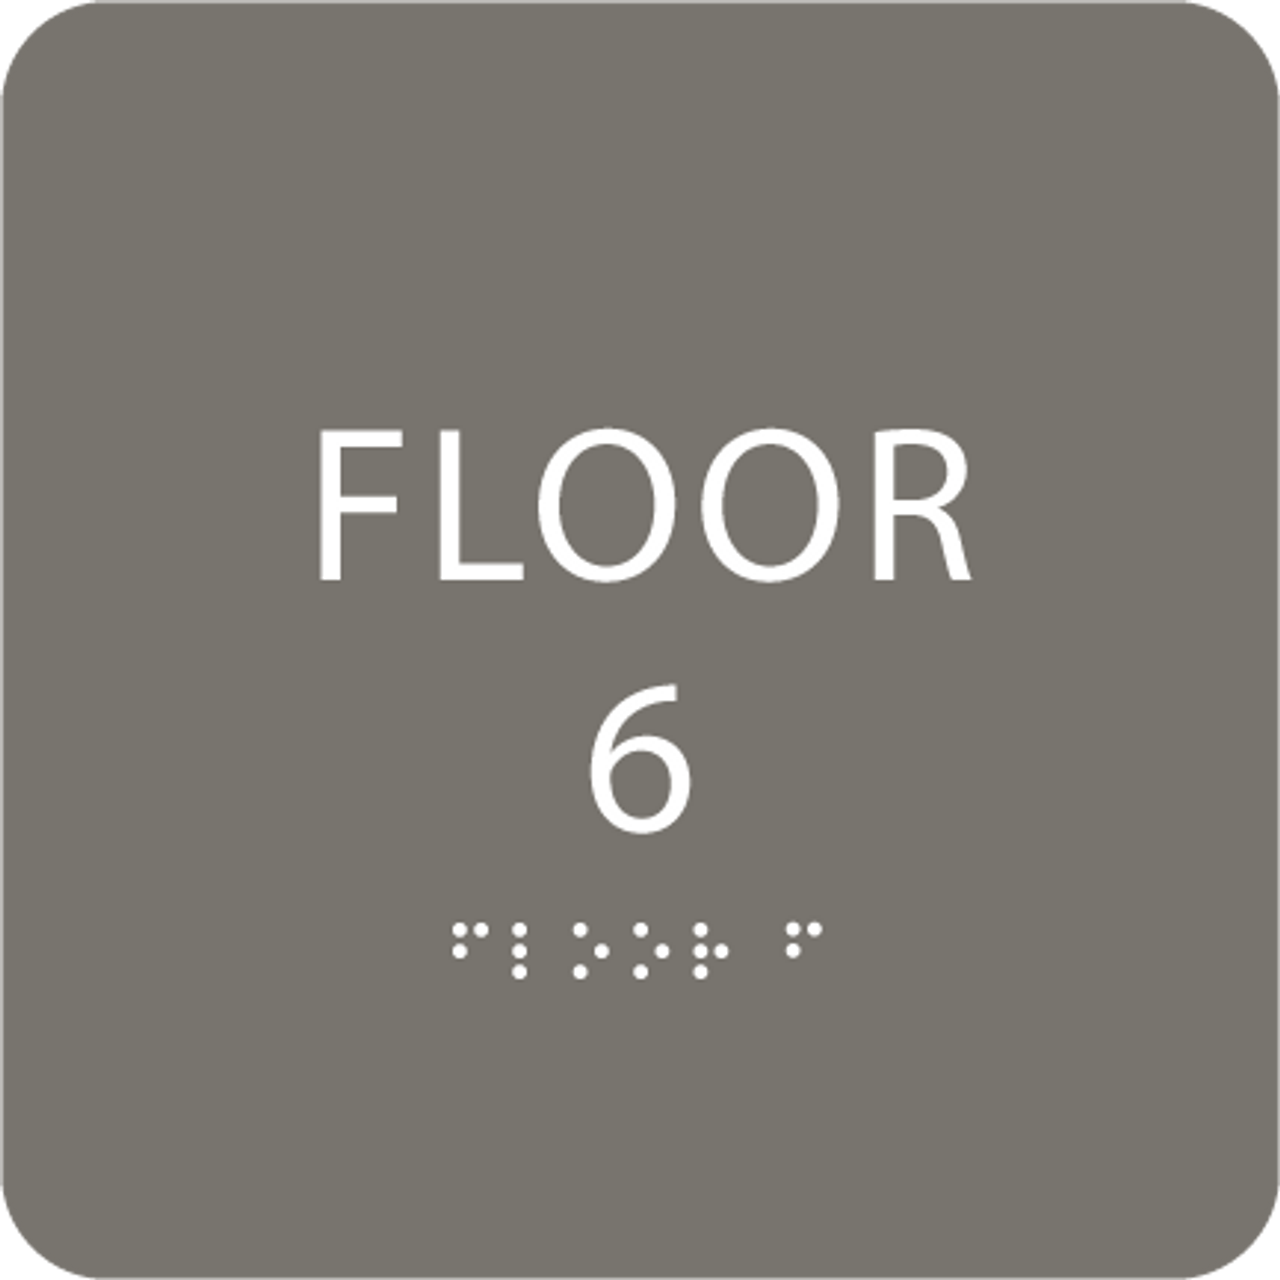 Dark Grey Floor 6 Level Identification ADA Sign